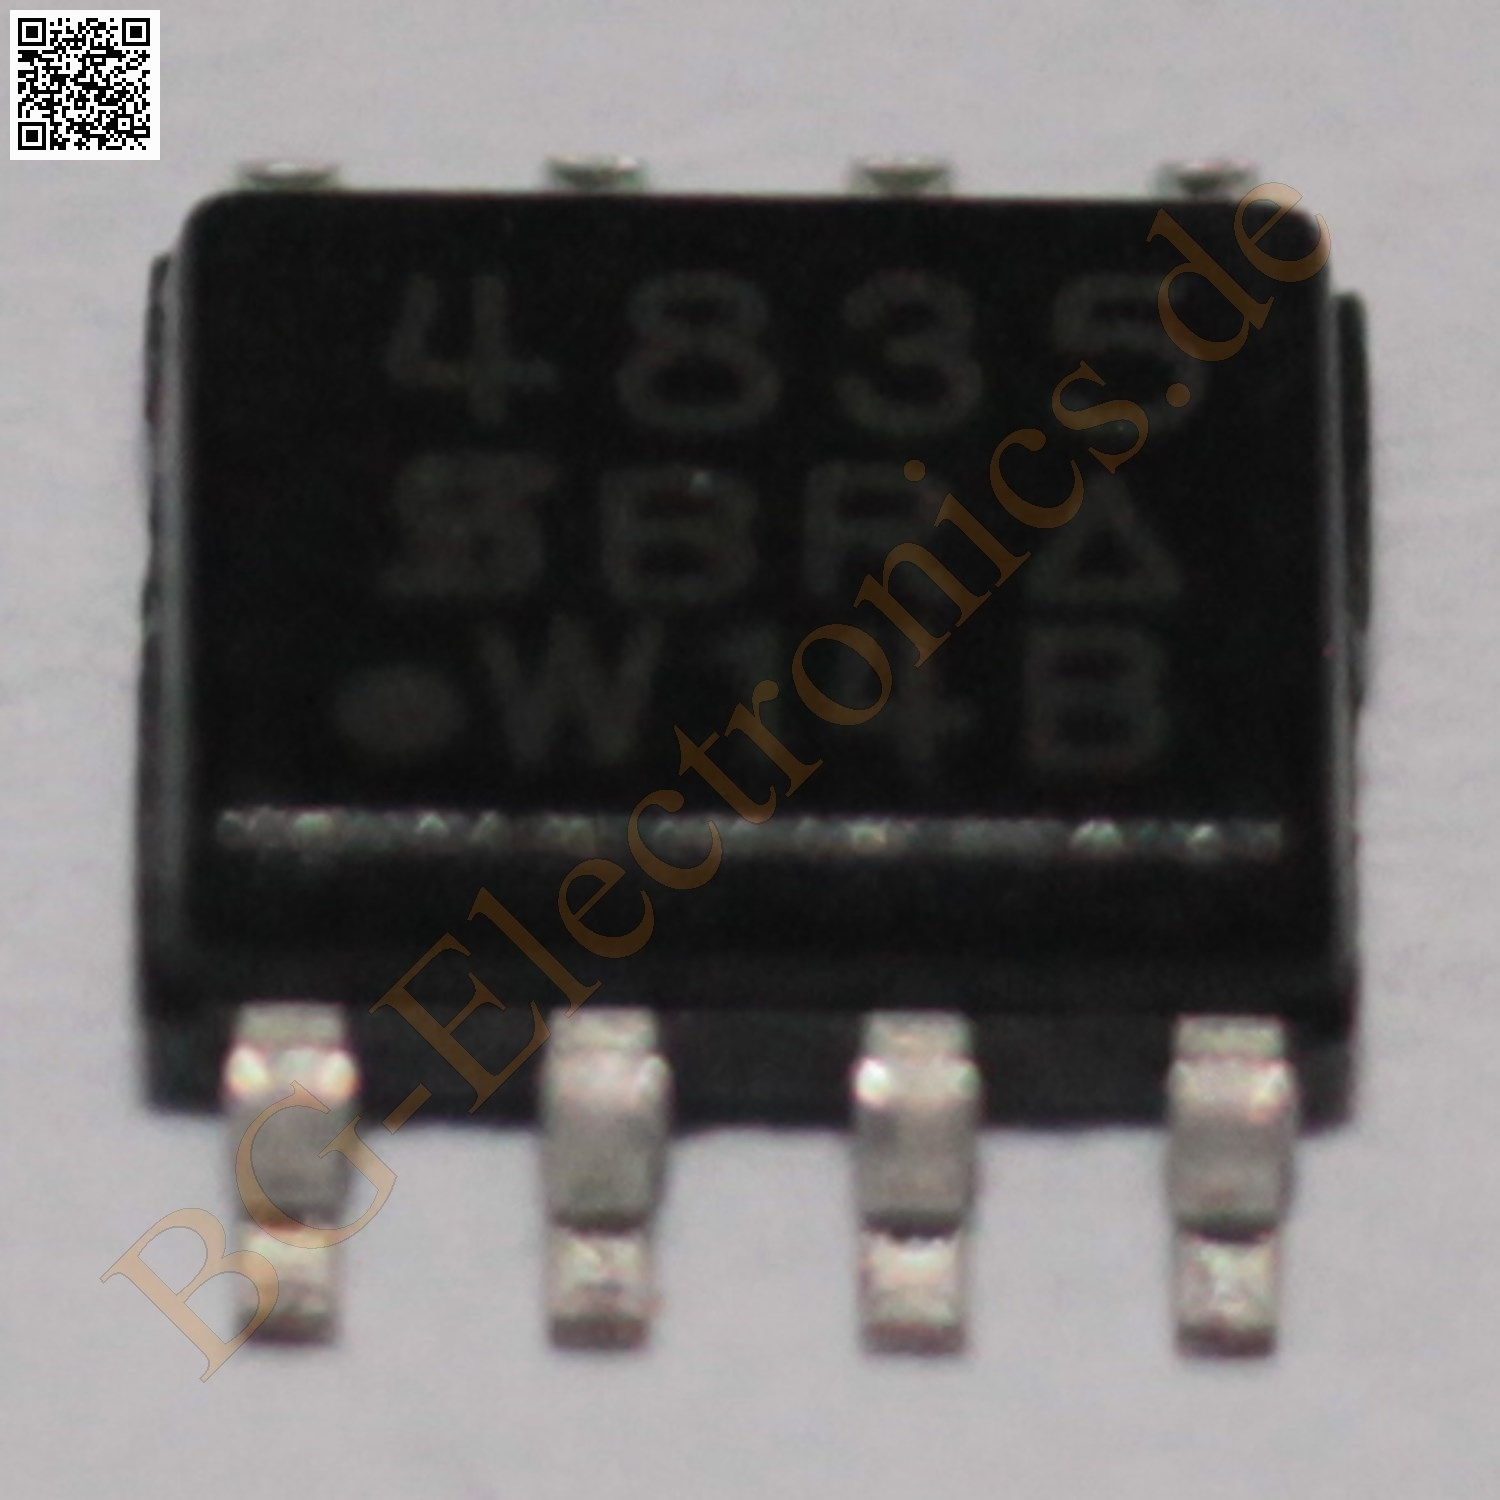 2-x-SI4835DY-P-Channel-30-V-D-S-MOSFET-Siliconi-SO-8-2pcs